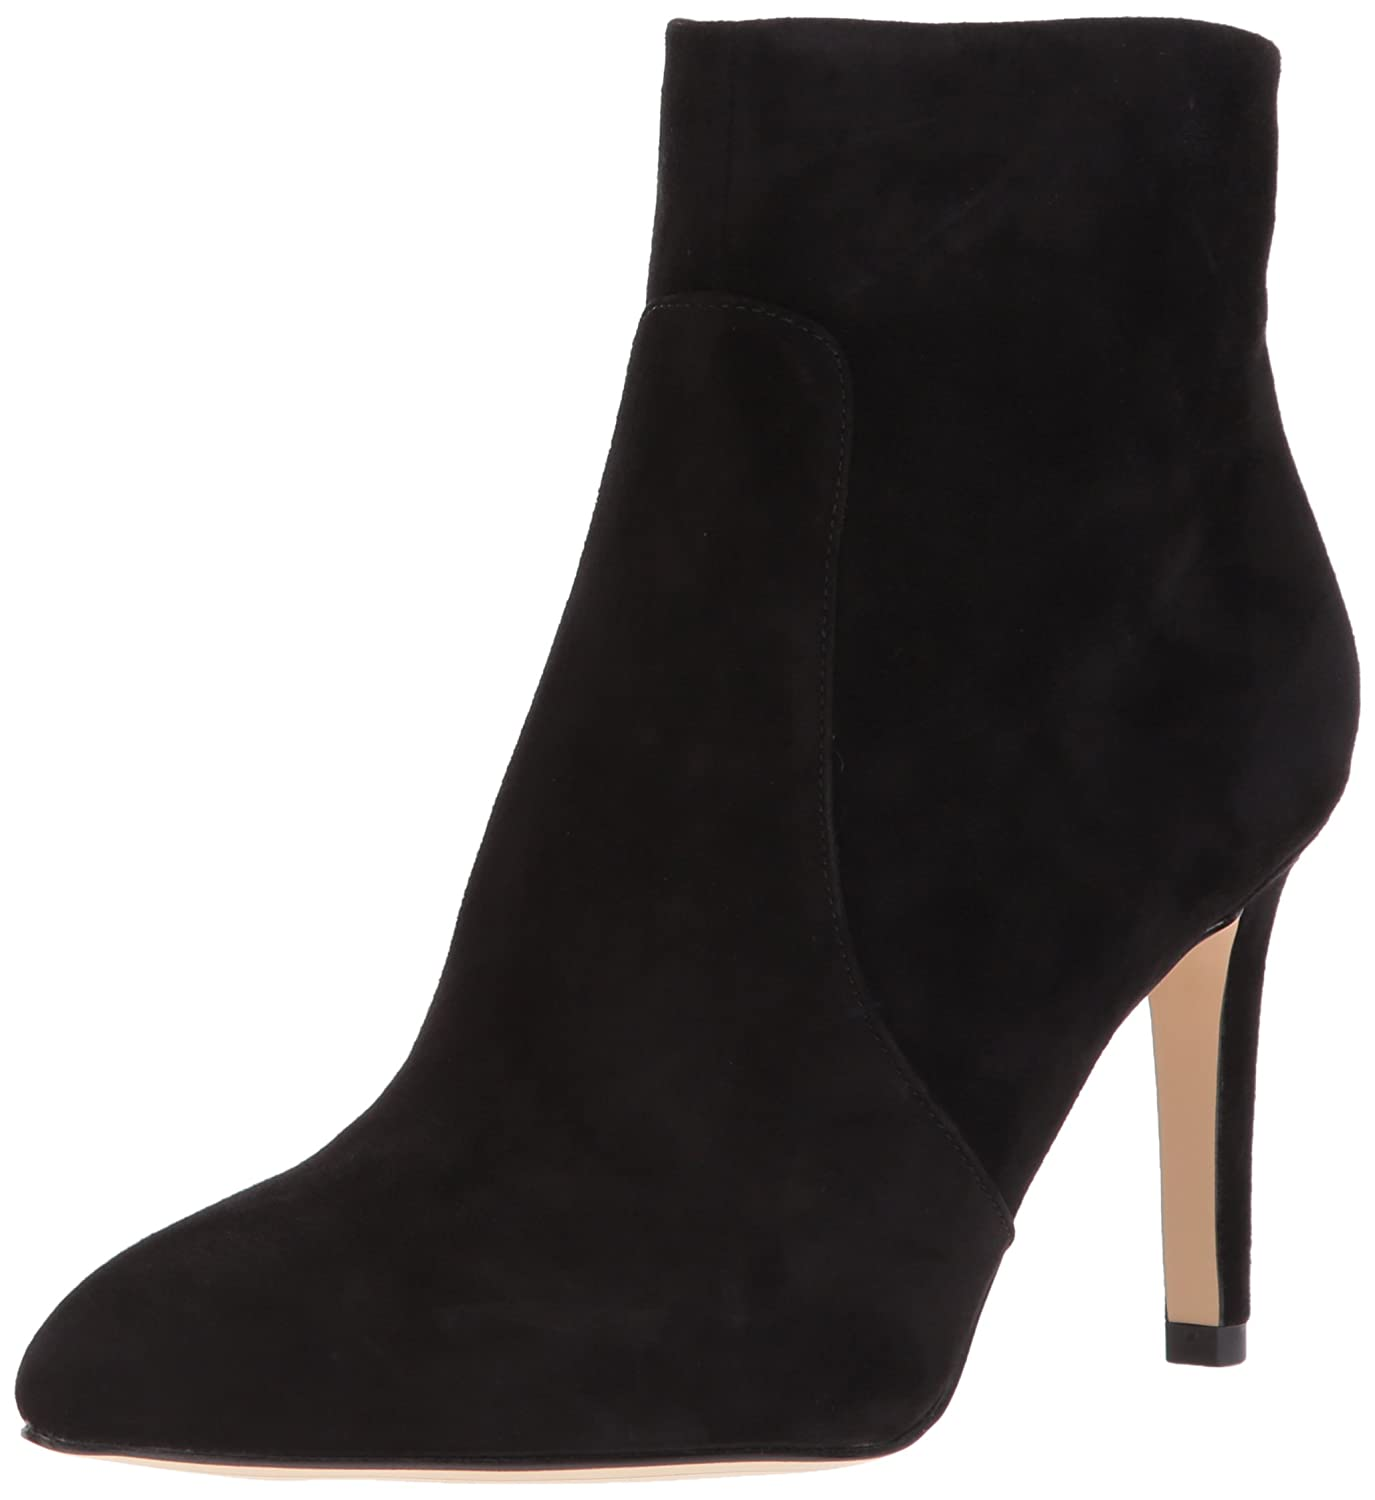 Sam Edelman Women's Olette Fashion Boot B072BK83V6 10.5 B(M) US|Black Suede